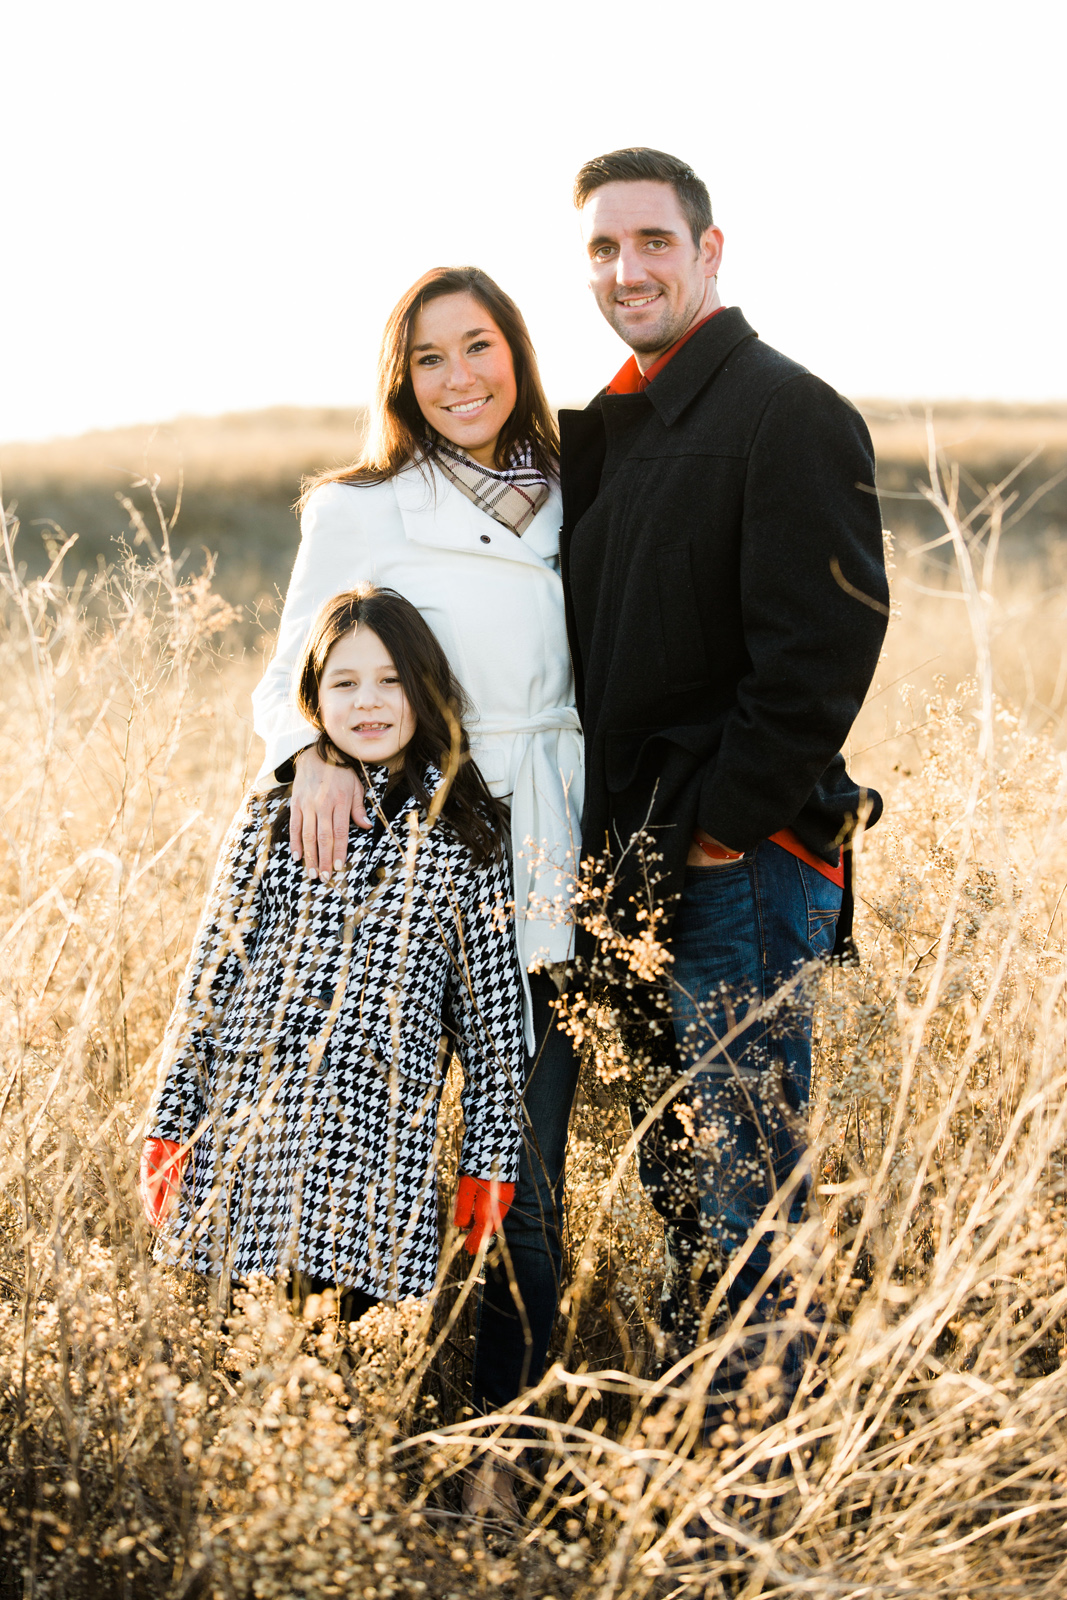 Oldani Photography-St Charles-Family Session-engagement-New Town_20141228_16554185.jpg